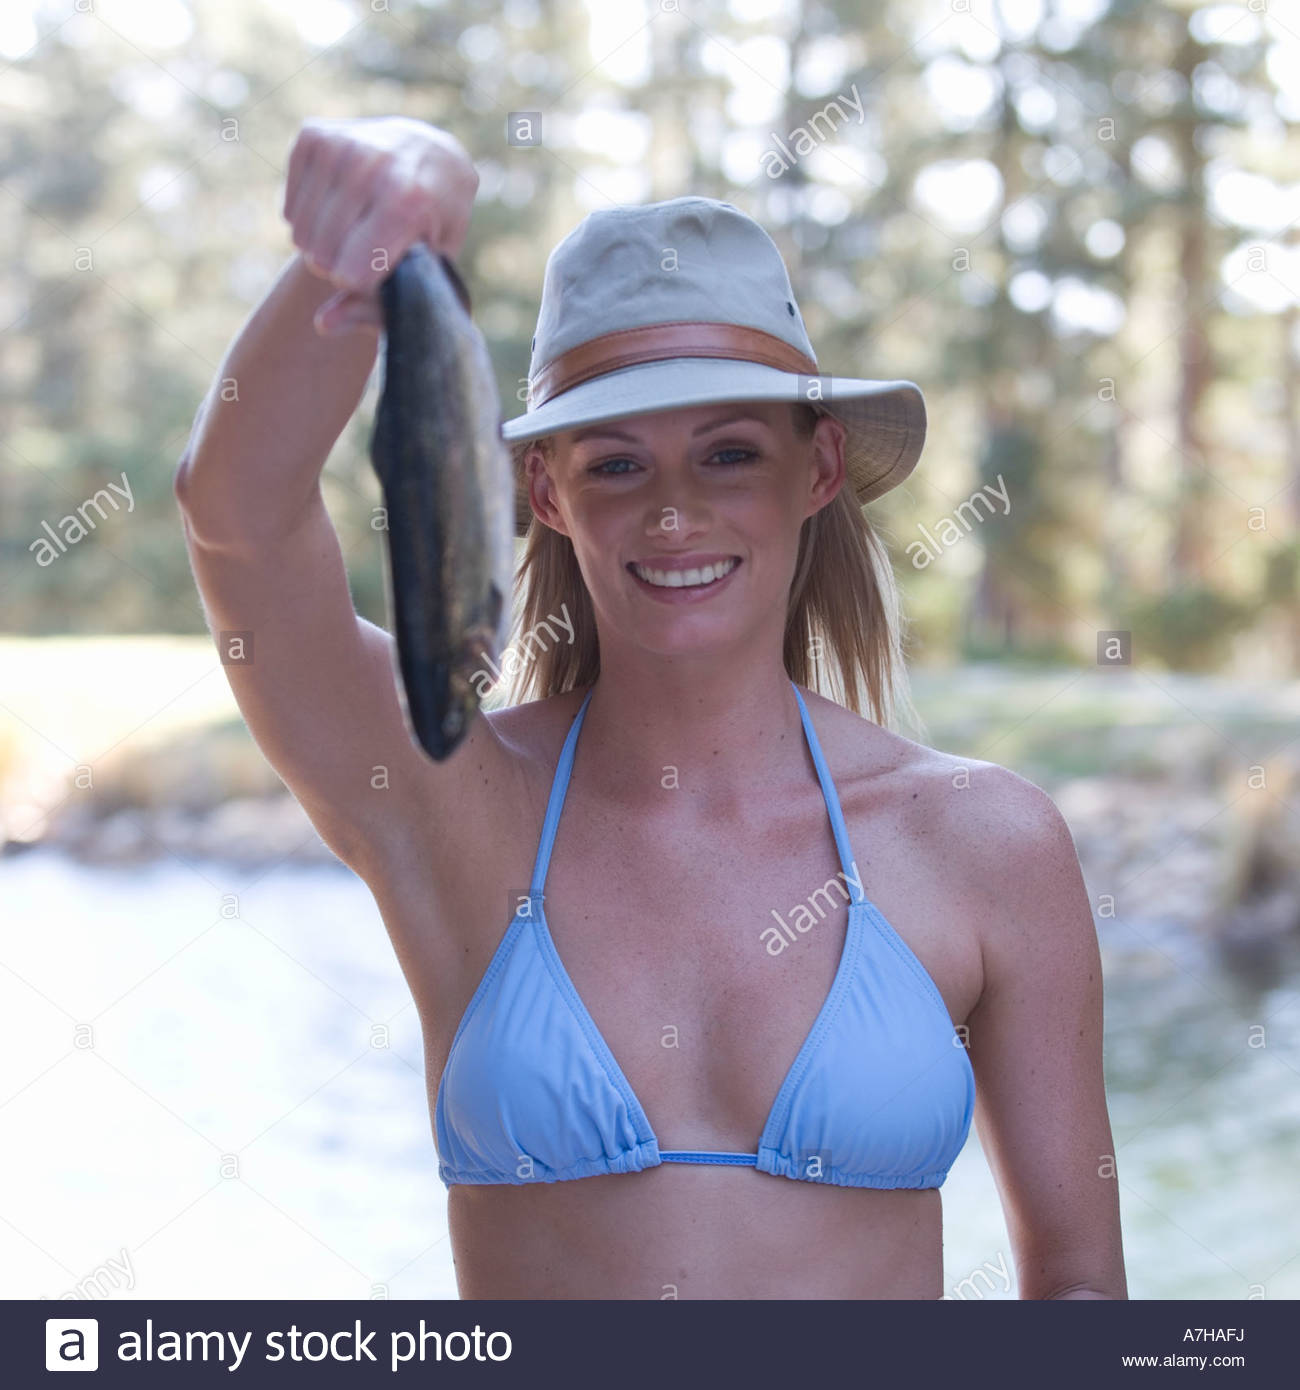 Bikini woman fishing picture